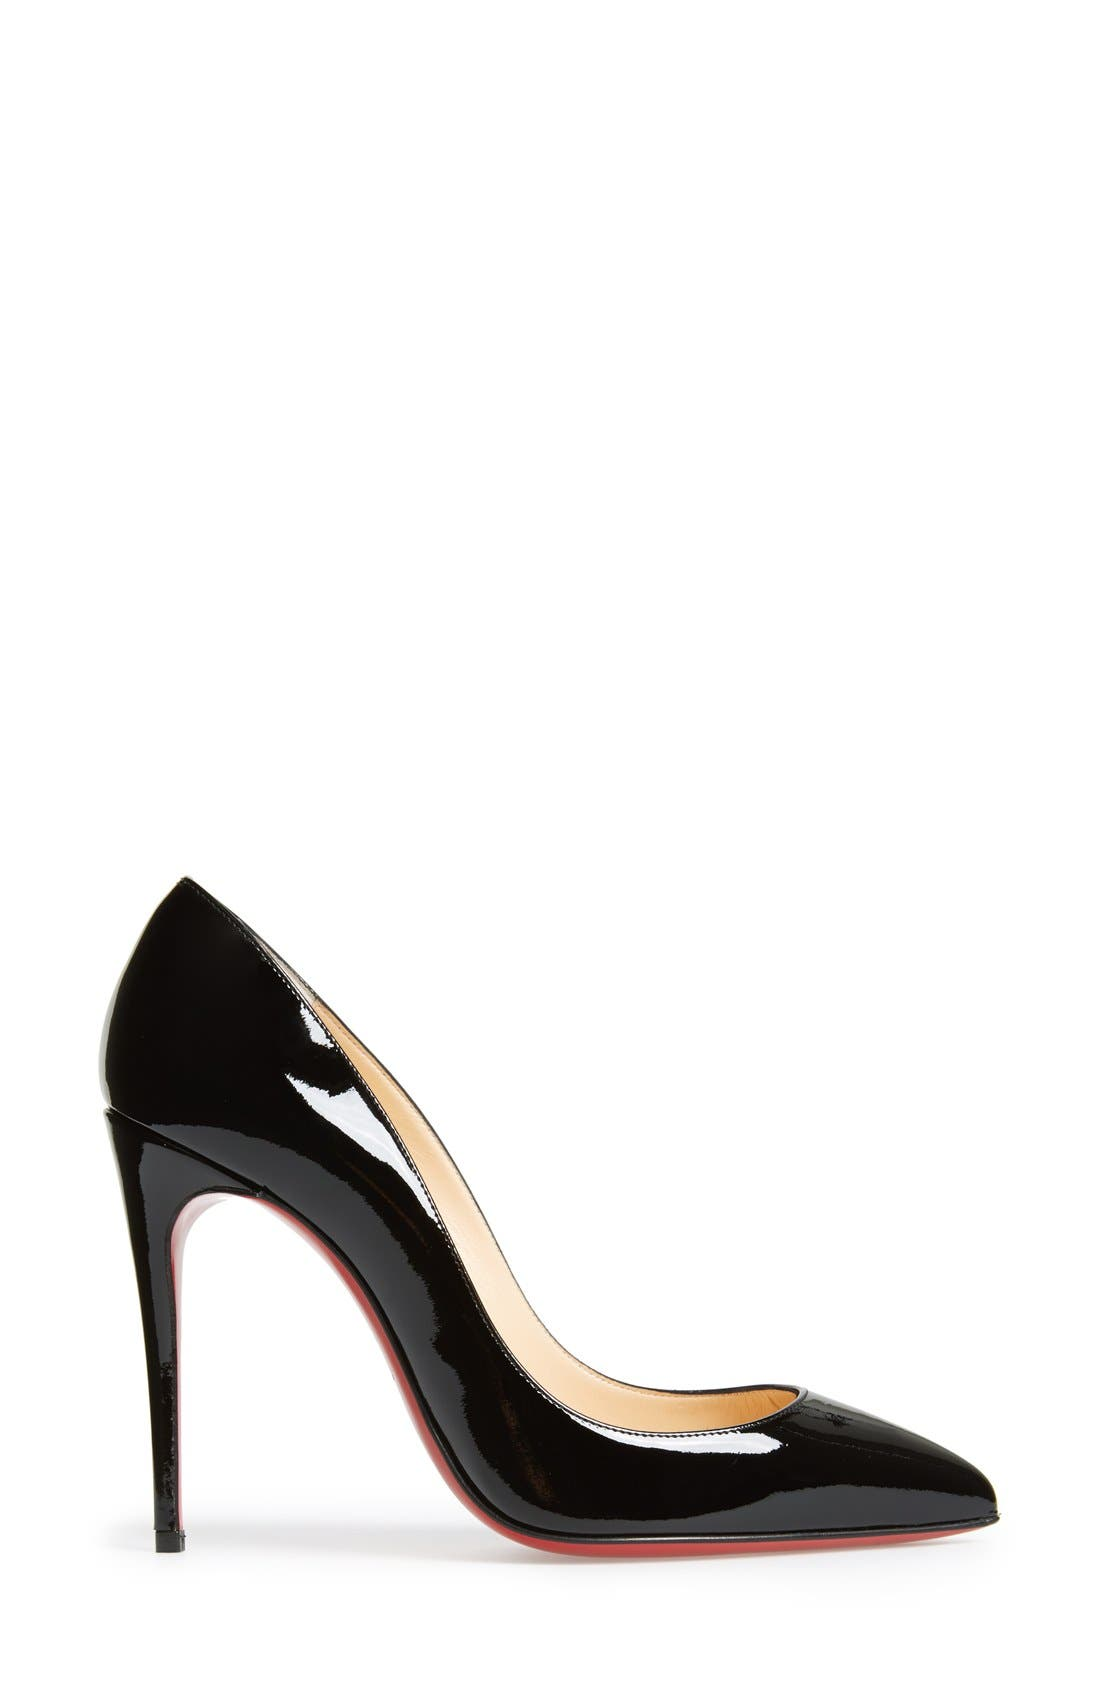 CHRISTIAN LOUBOUTIN, Pigalle Follies Pointy Toe Pump, Alternate thumbnail 4, color, BLACK PATENT